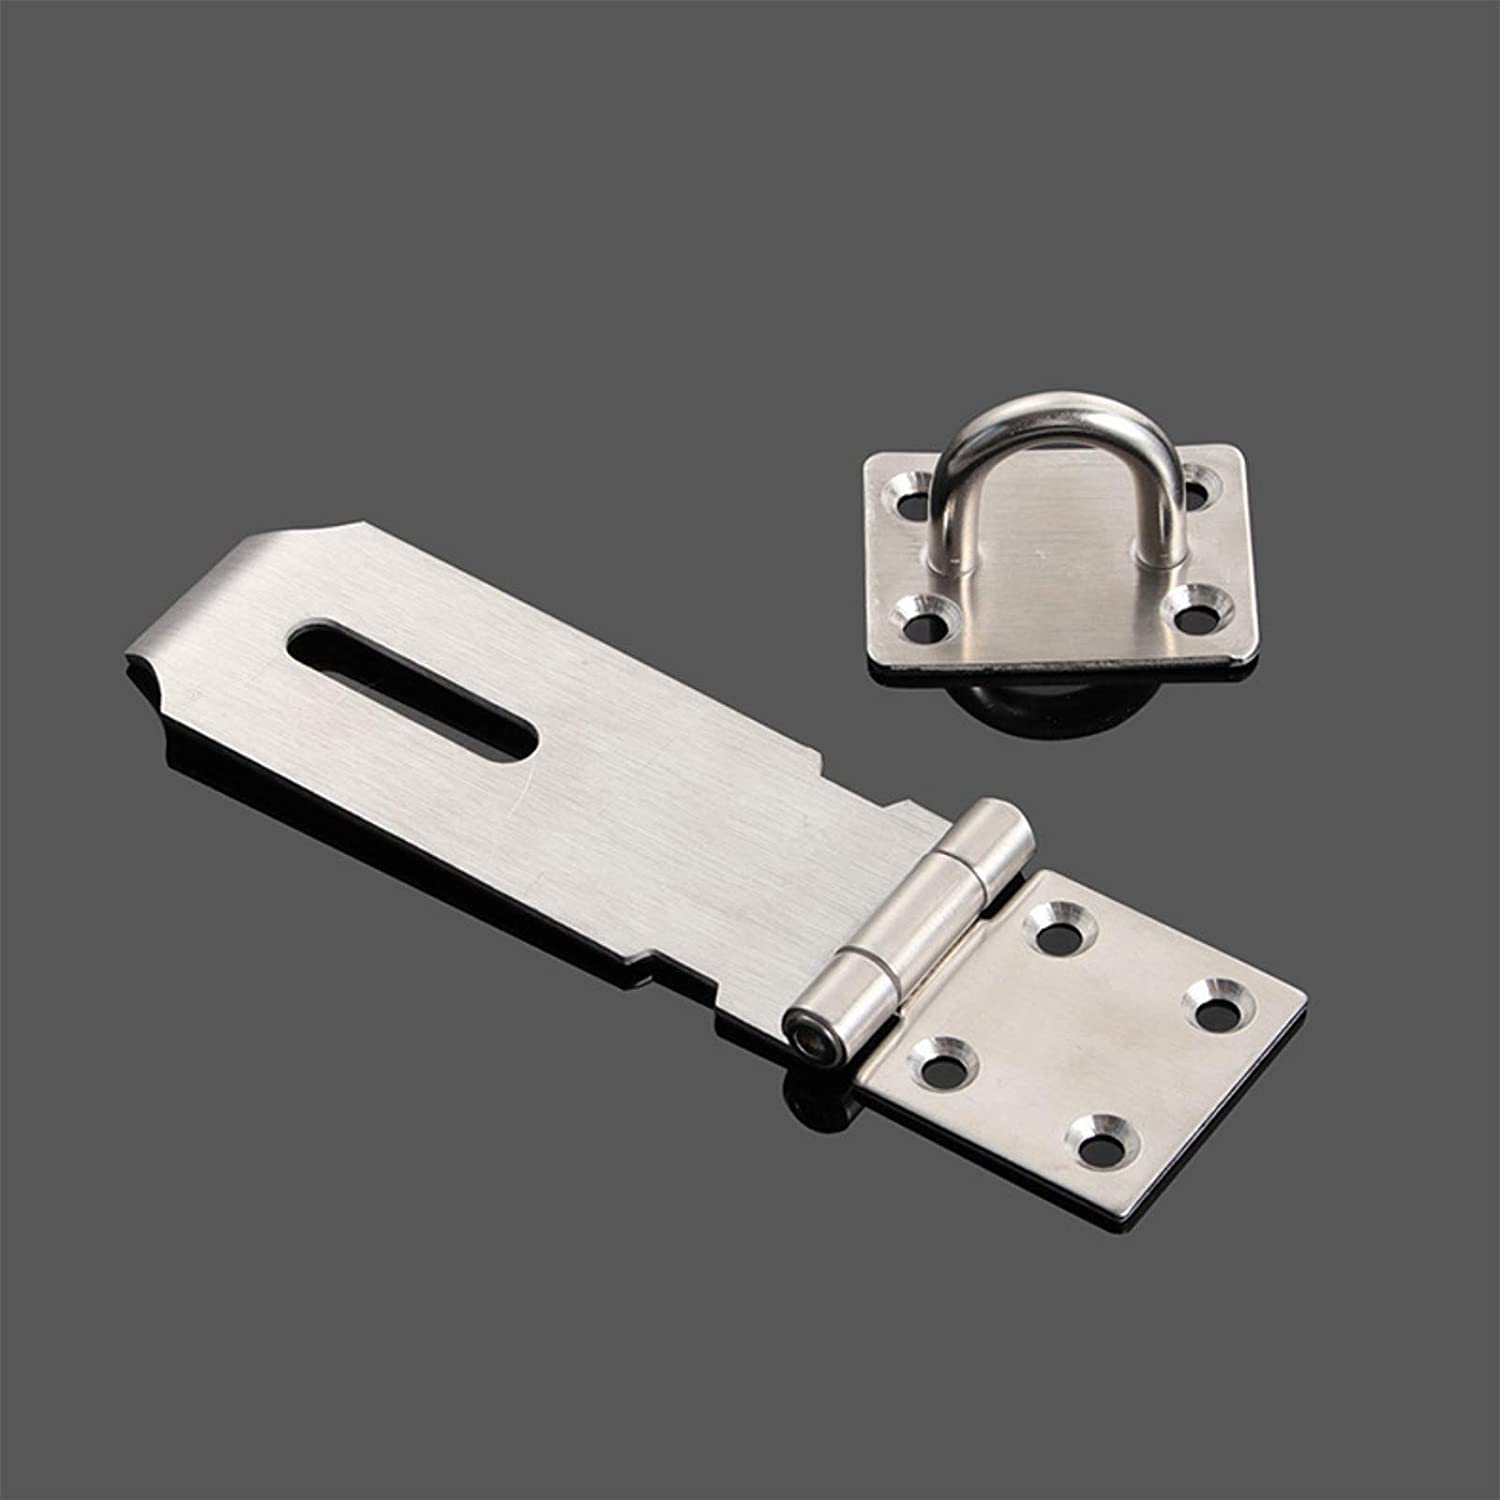 Pack of 2 3//4//5 inch Stainless Steel Padlock Hasp Latch with Screws Safety Door Lock Anti-Rust 5inch